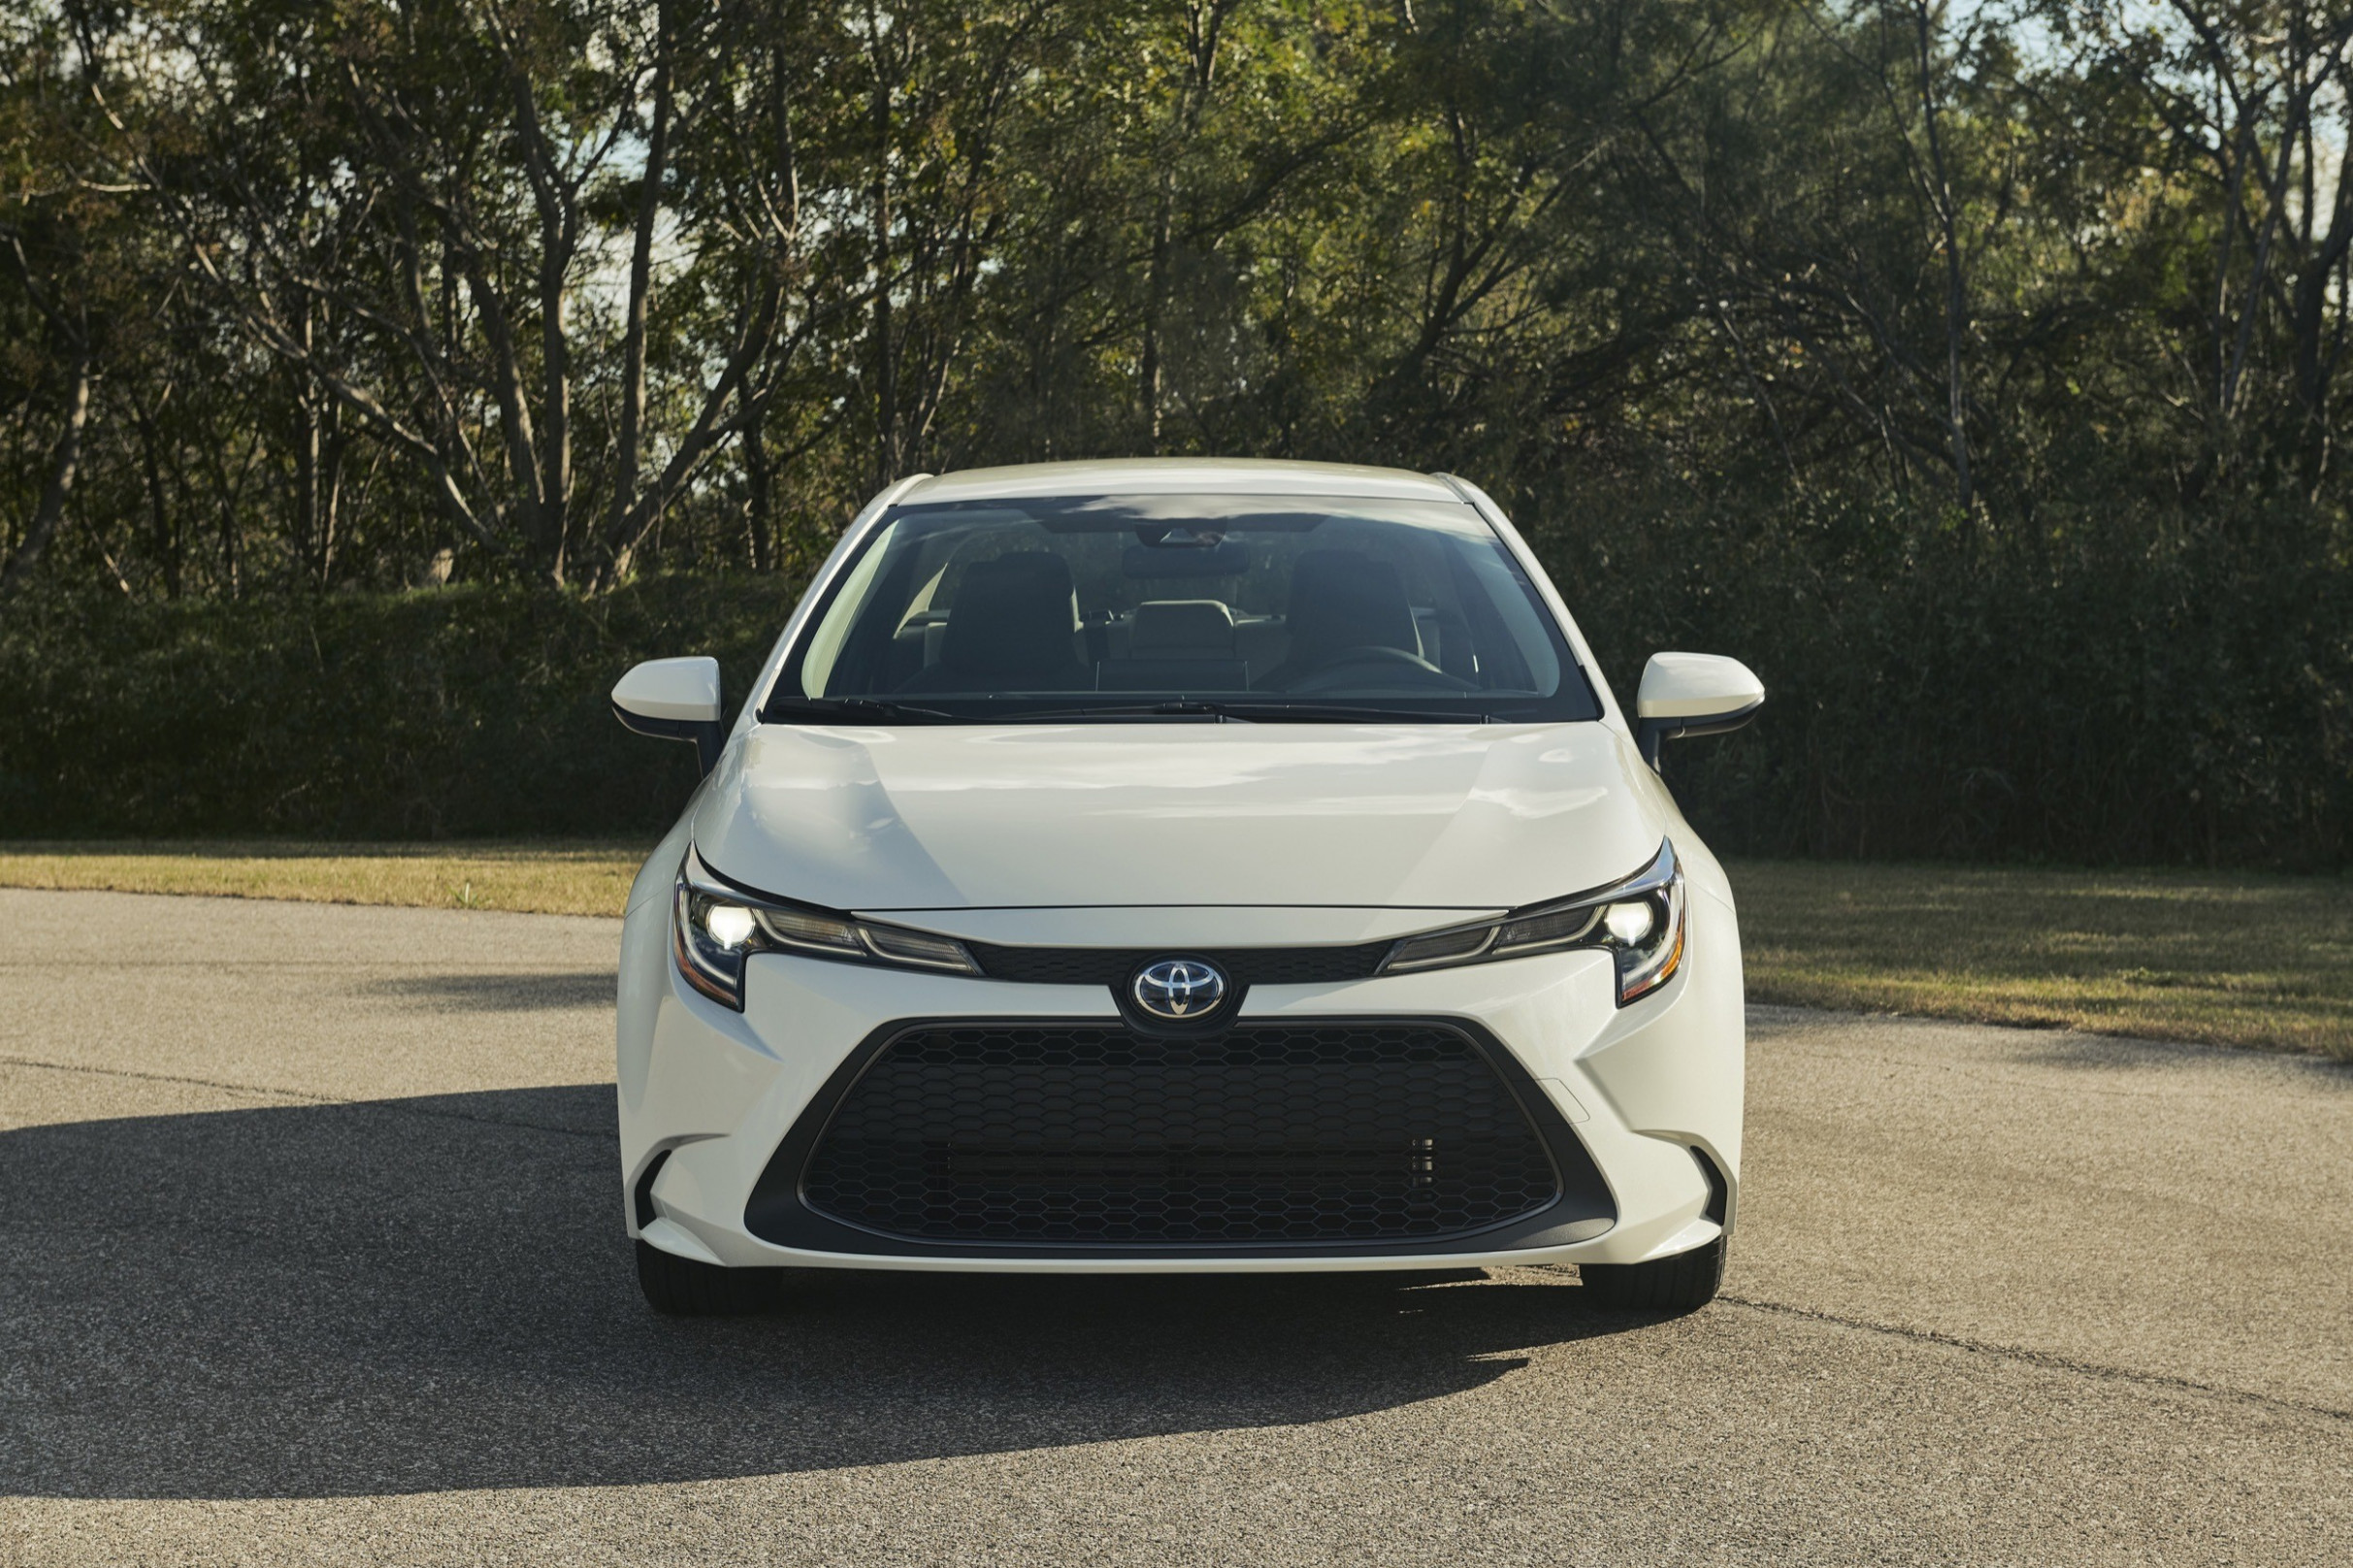 Style When Will The 2022 Toyota Corolla Be Available